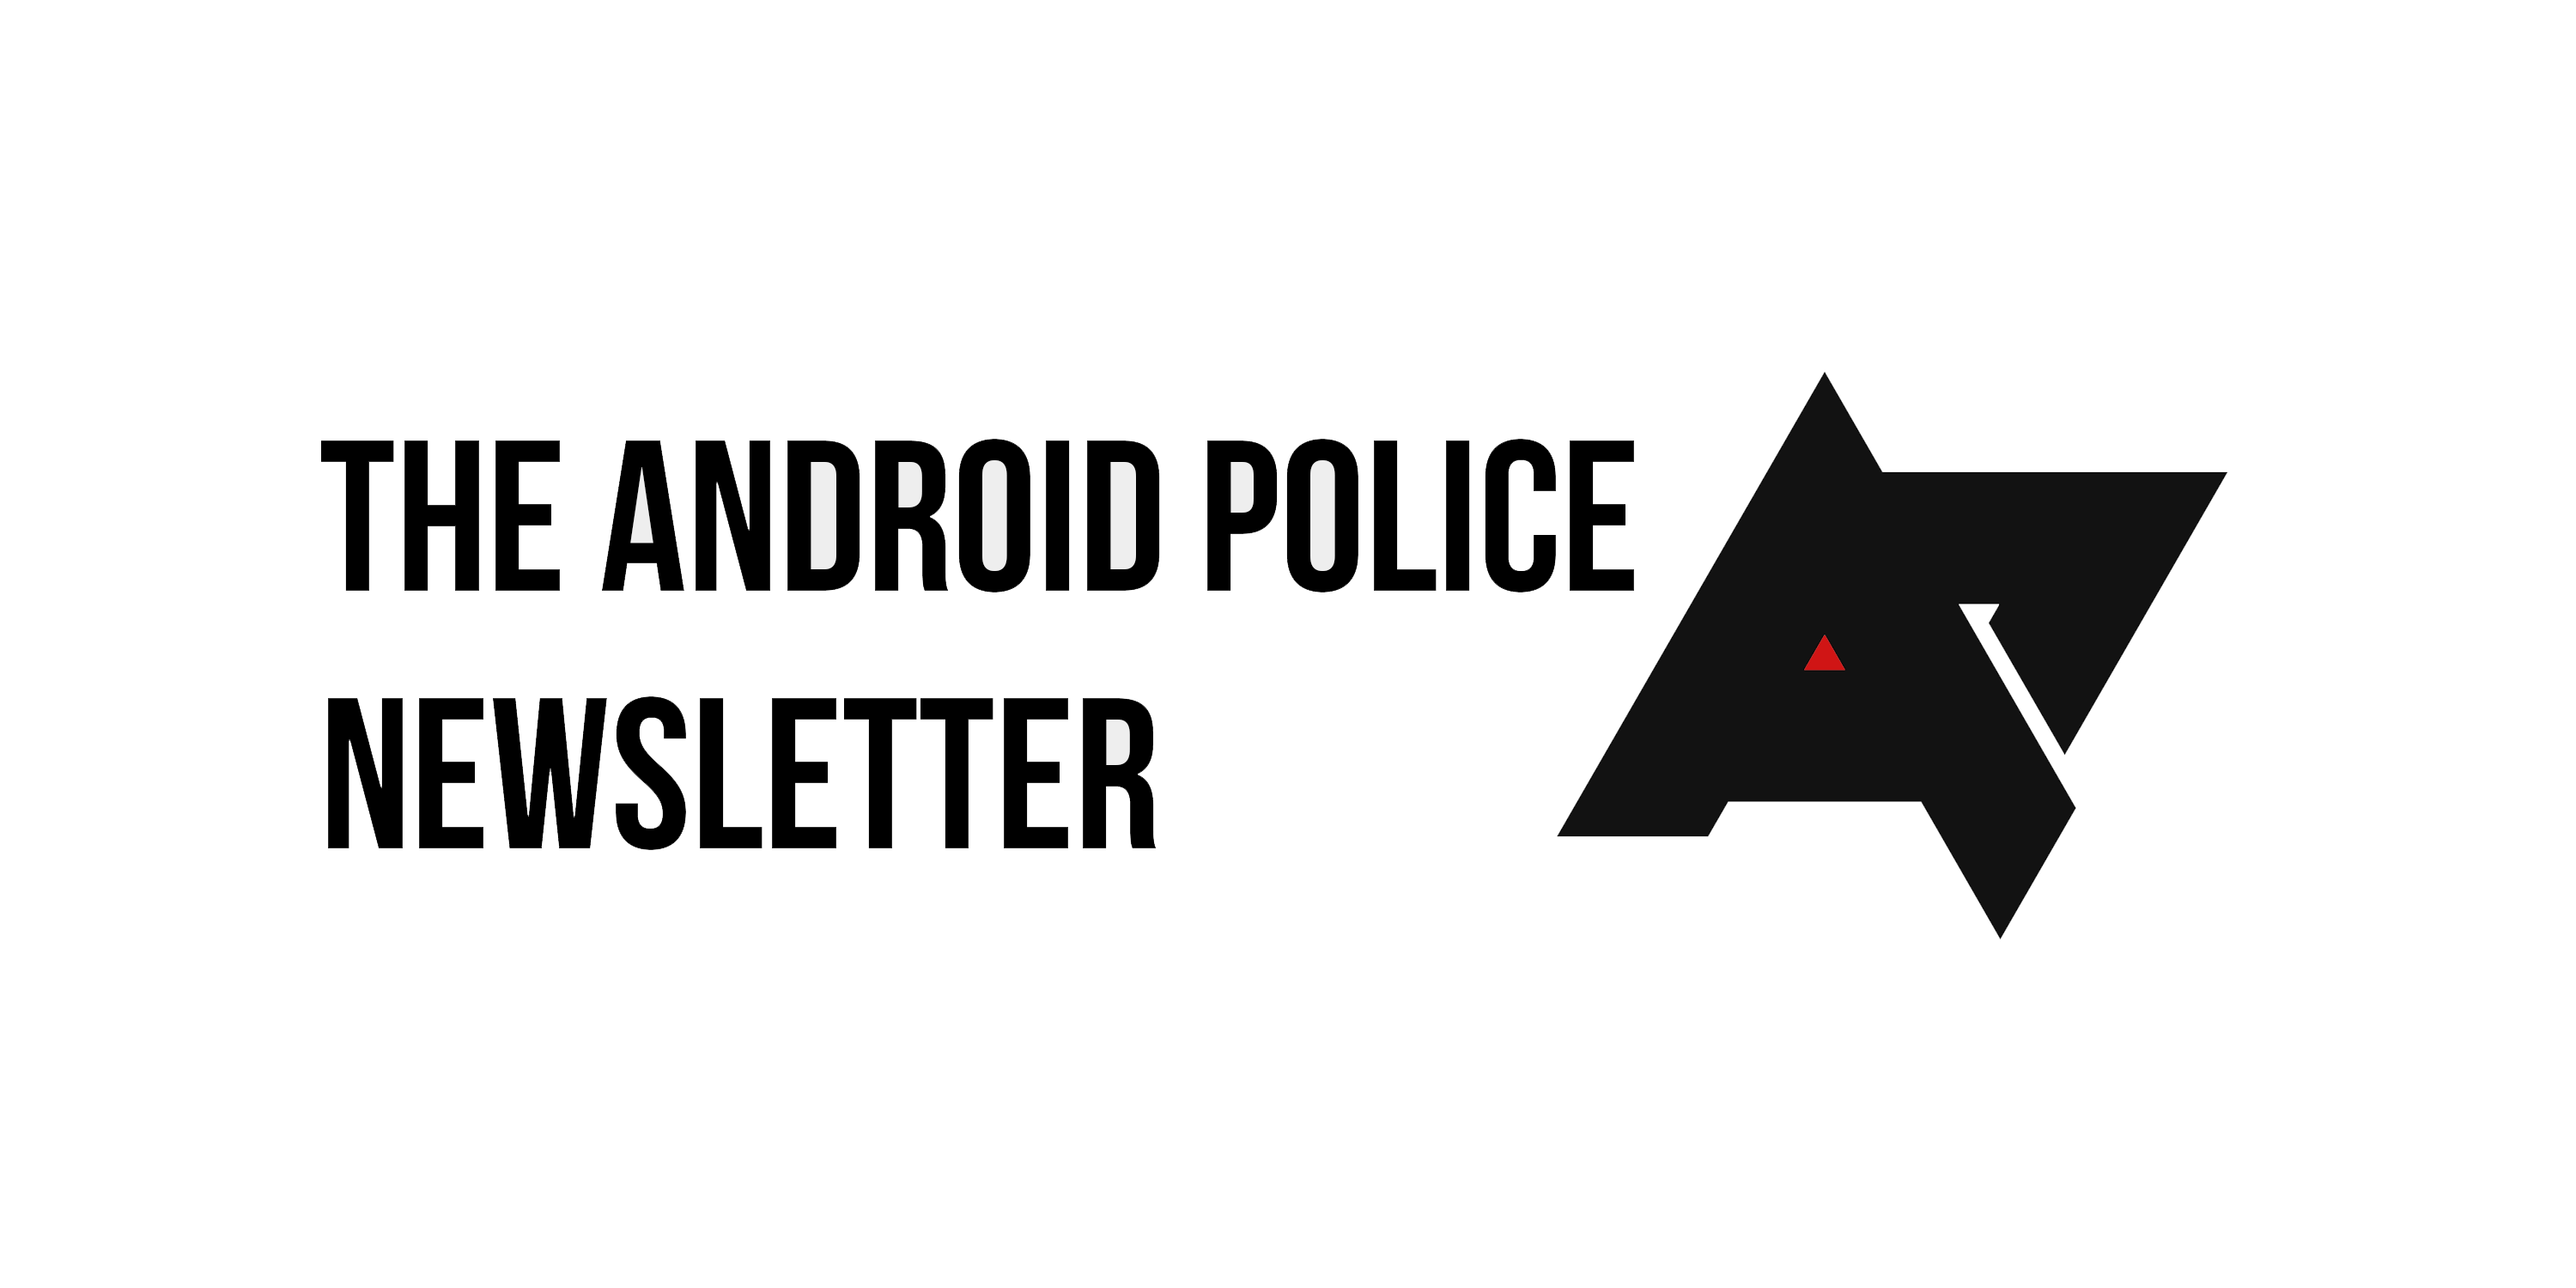 Weekend poll: Have you signed up for the Android Police newsletter?